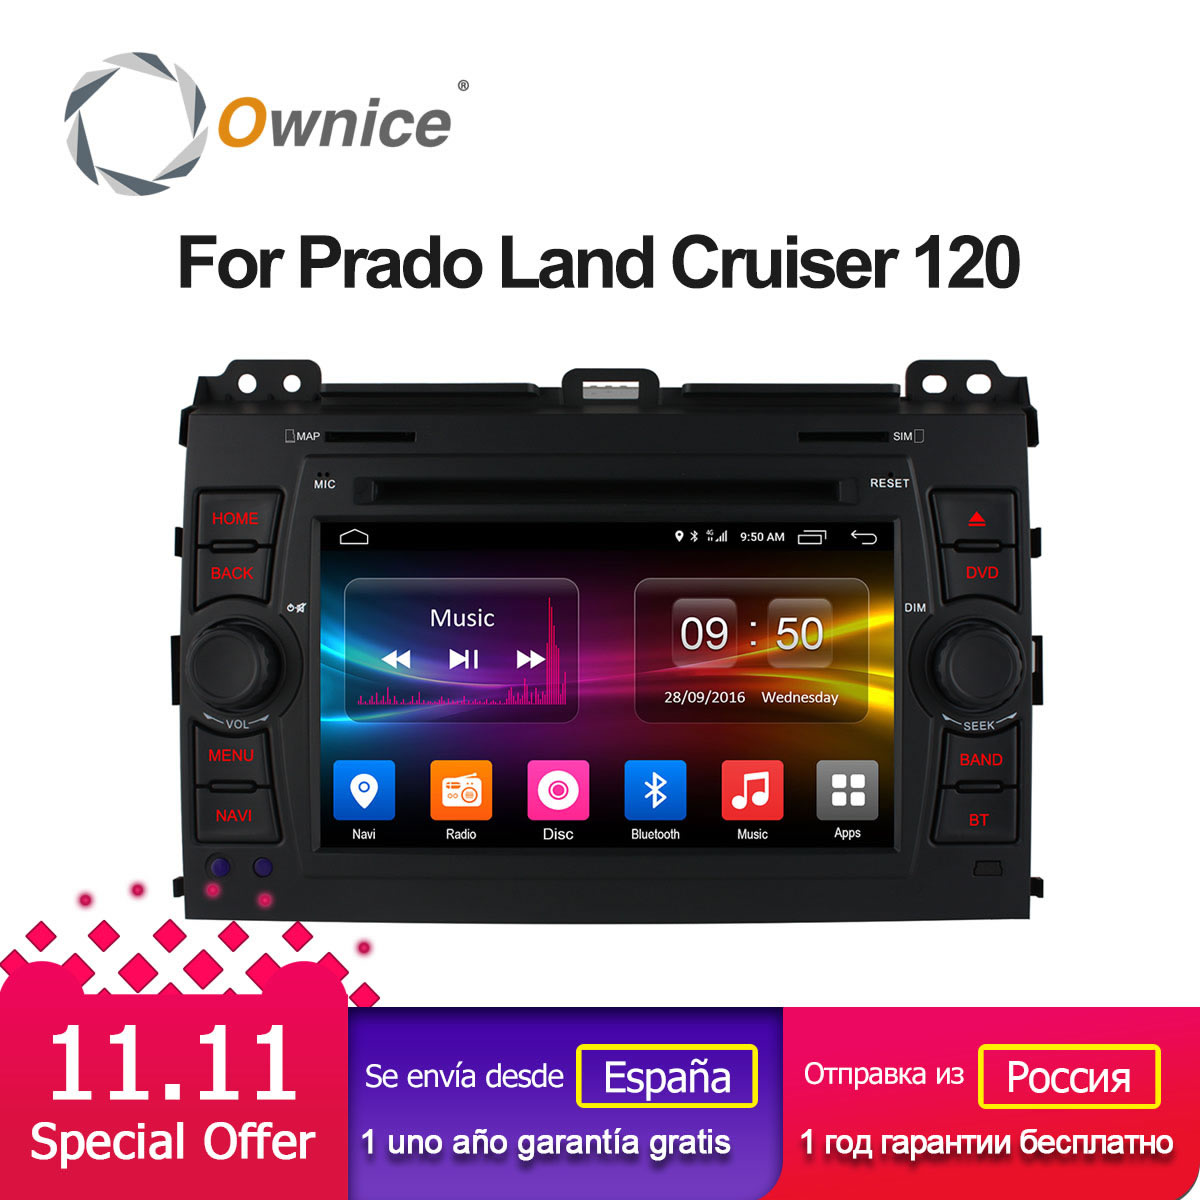 Ownice C500 4G LTE SIM Octa 8 Core Android 6.0 Car DVD Player for Toyota Land Cruiser Prado 120 2002-2009 GPS Navi Radio 32G ROM ownice c500 g10 octa core 2gb ram 32g rom android car dvd 8 1 gps for mazda 6 summit 2009 2015 wifi 4g lte radio dab dvr